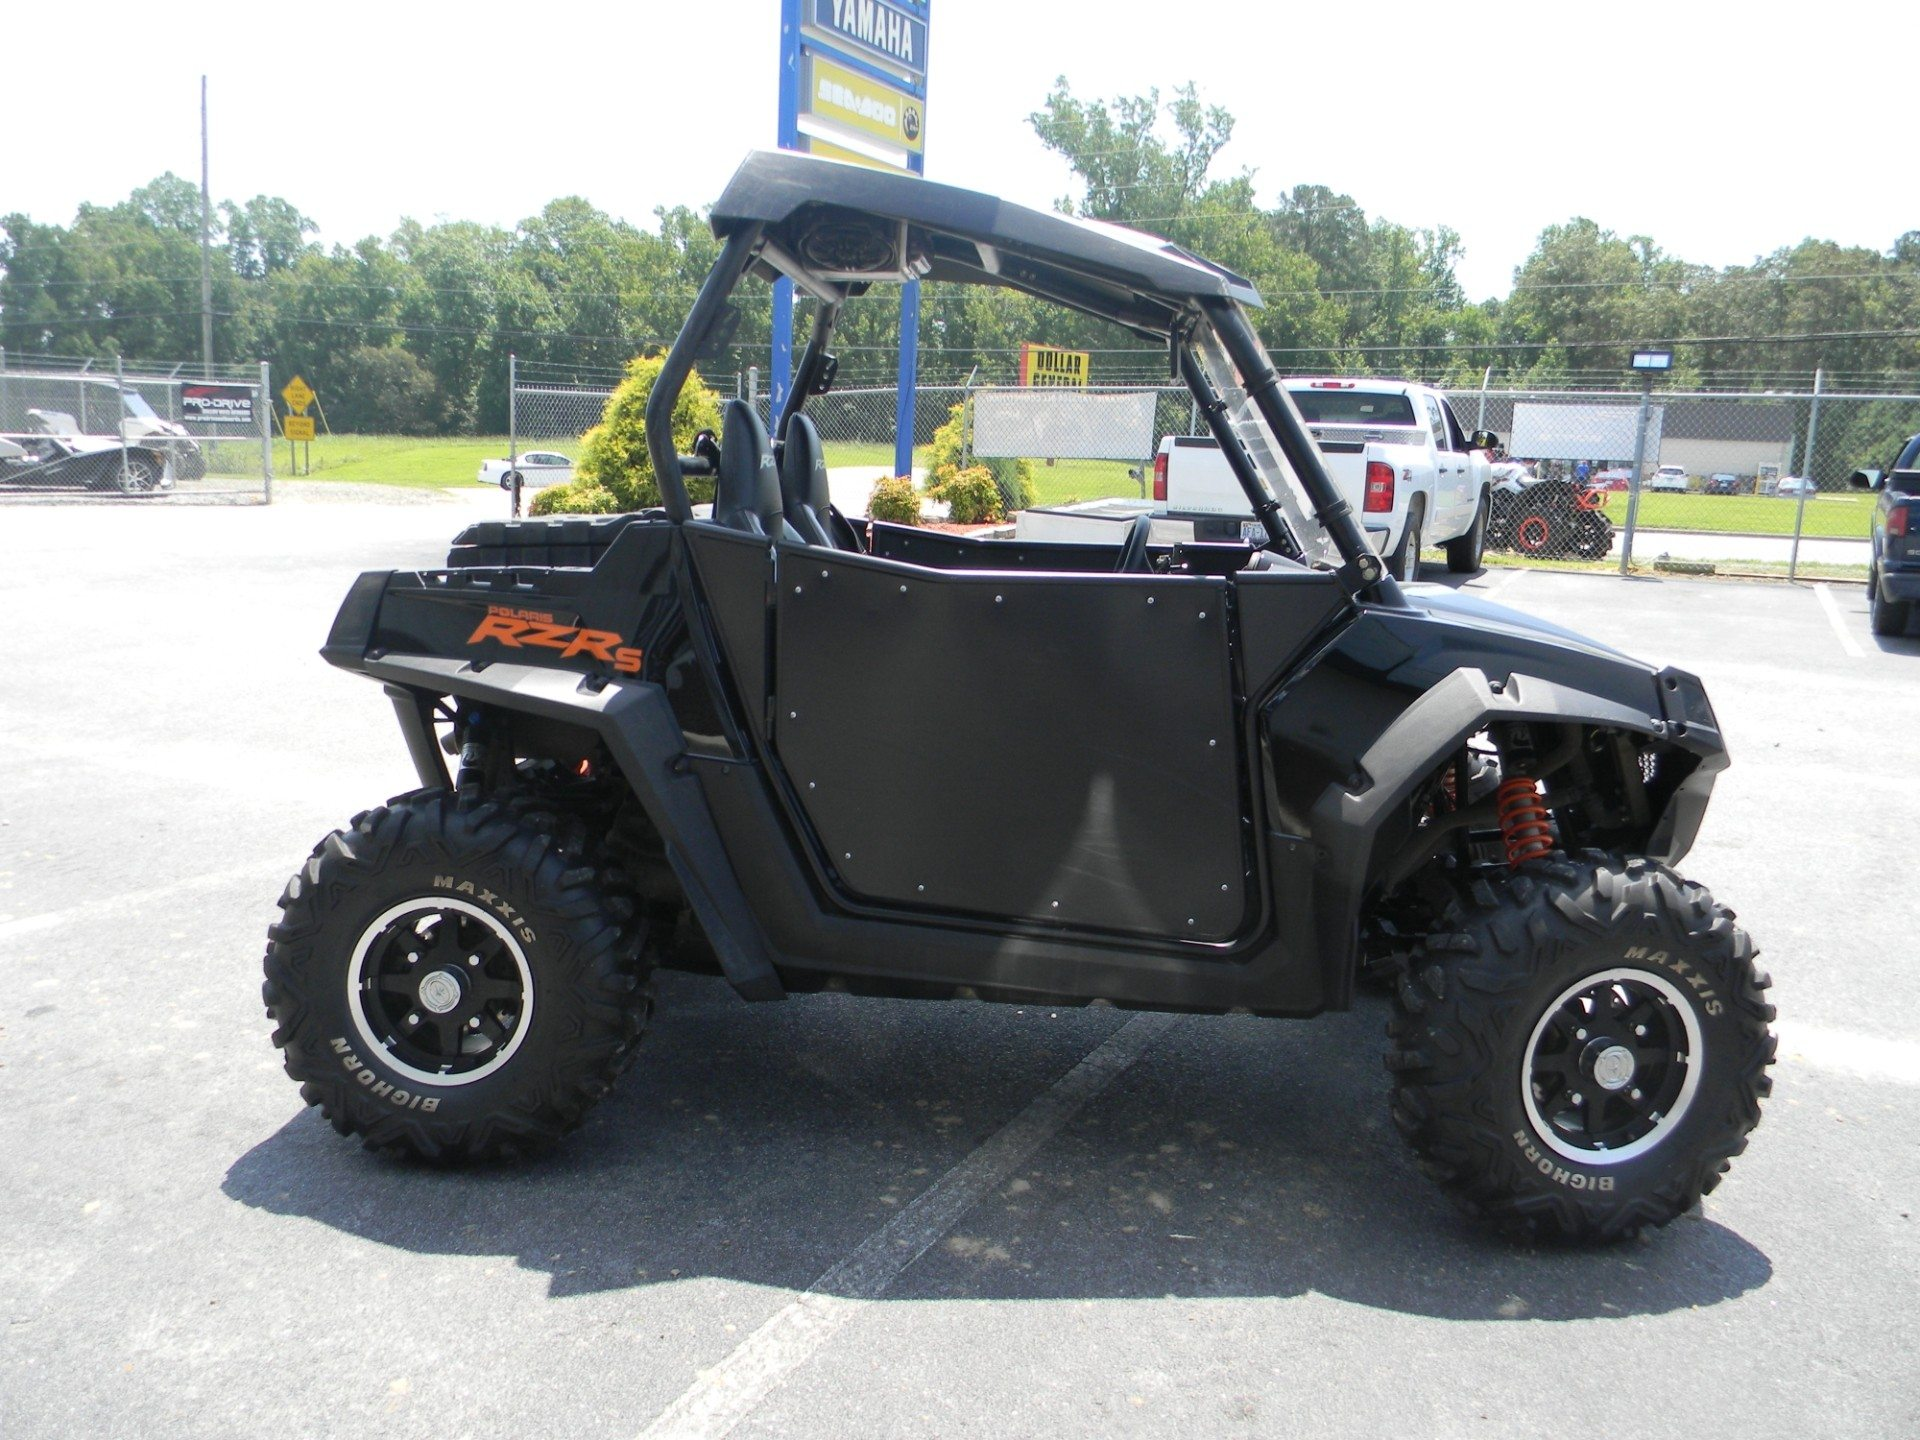 Scooters For Sale Greenville Nc >> 2013 Polaris RZR S 800 LE For Sale Greenville, NC : 541579